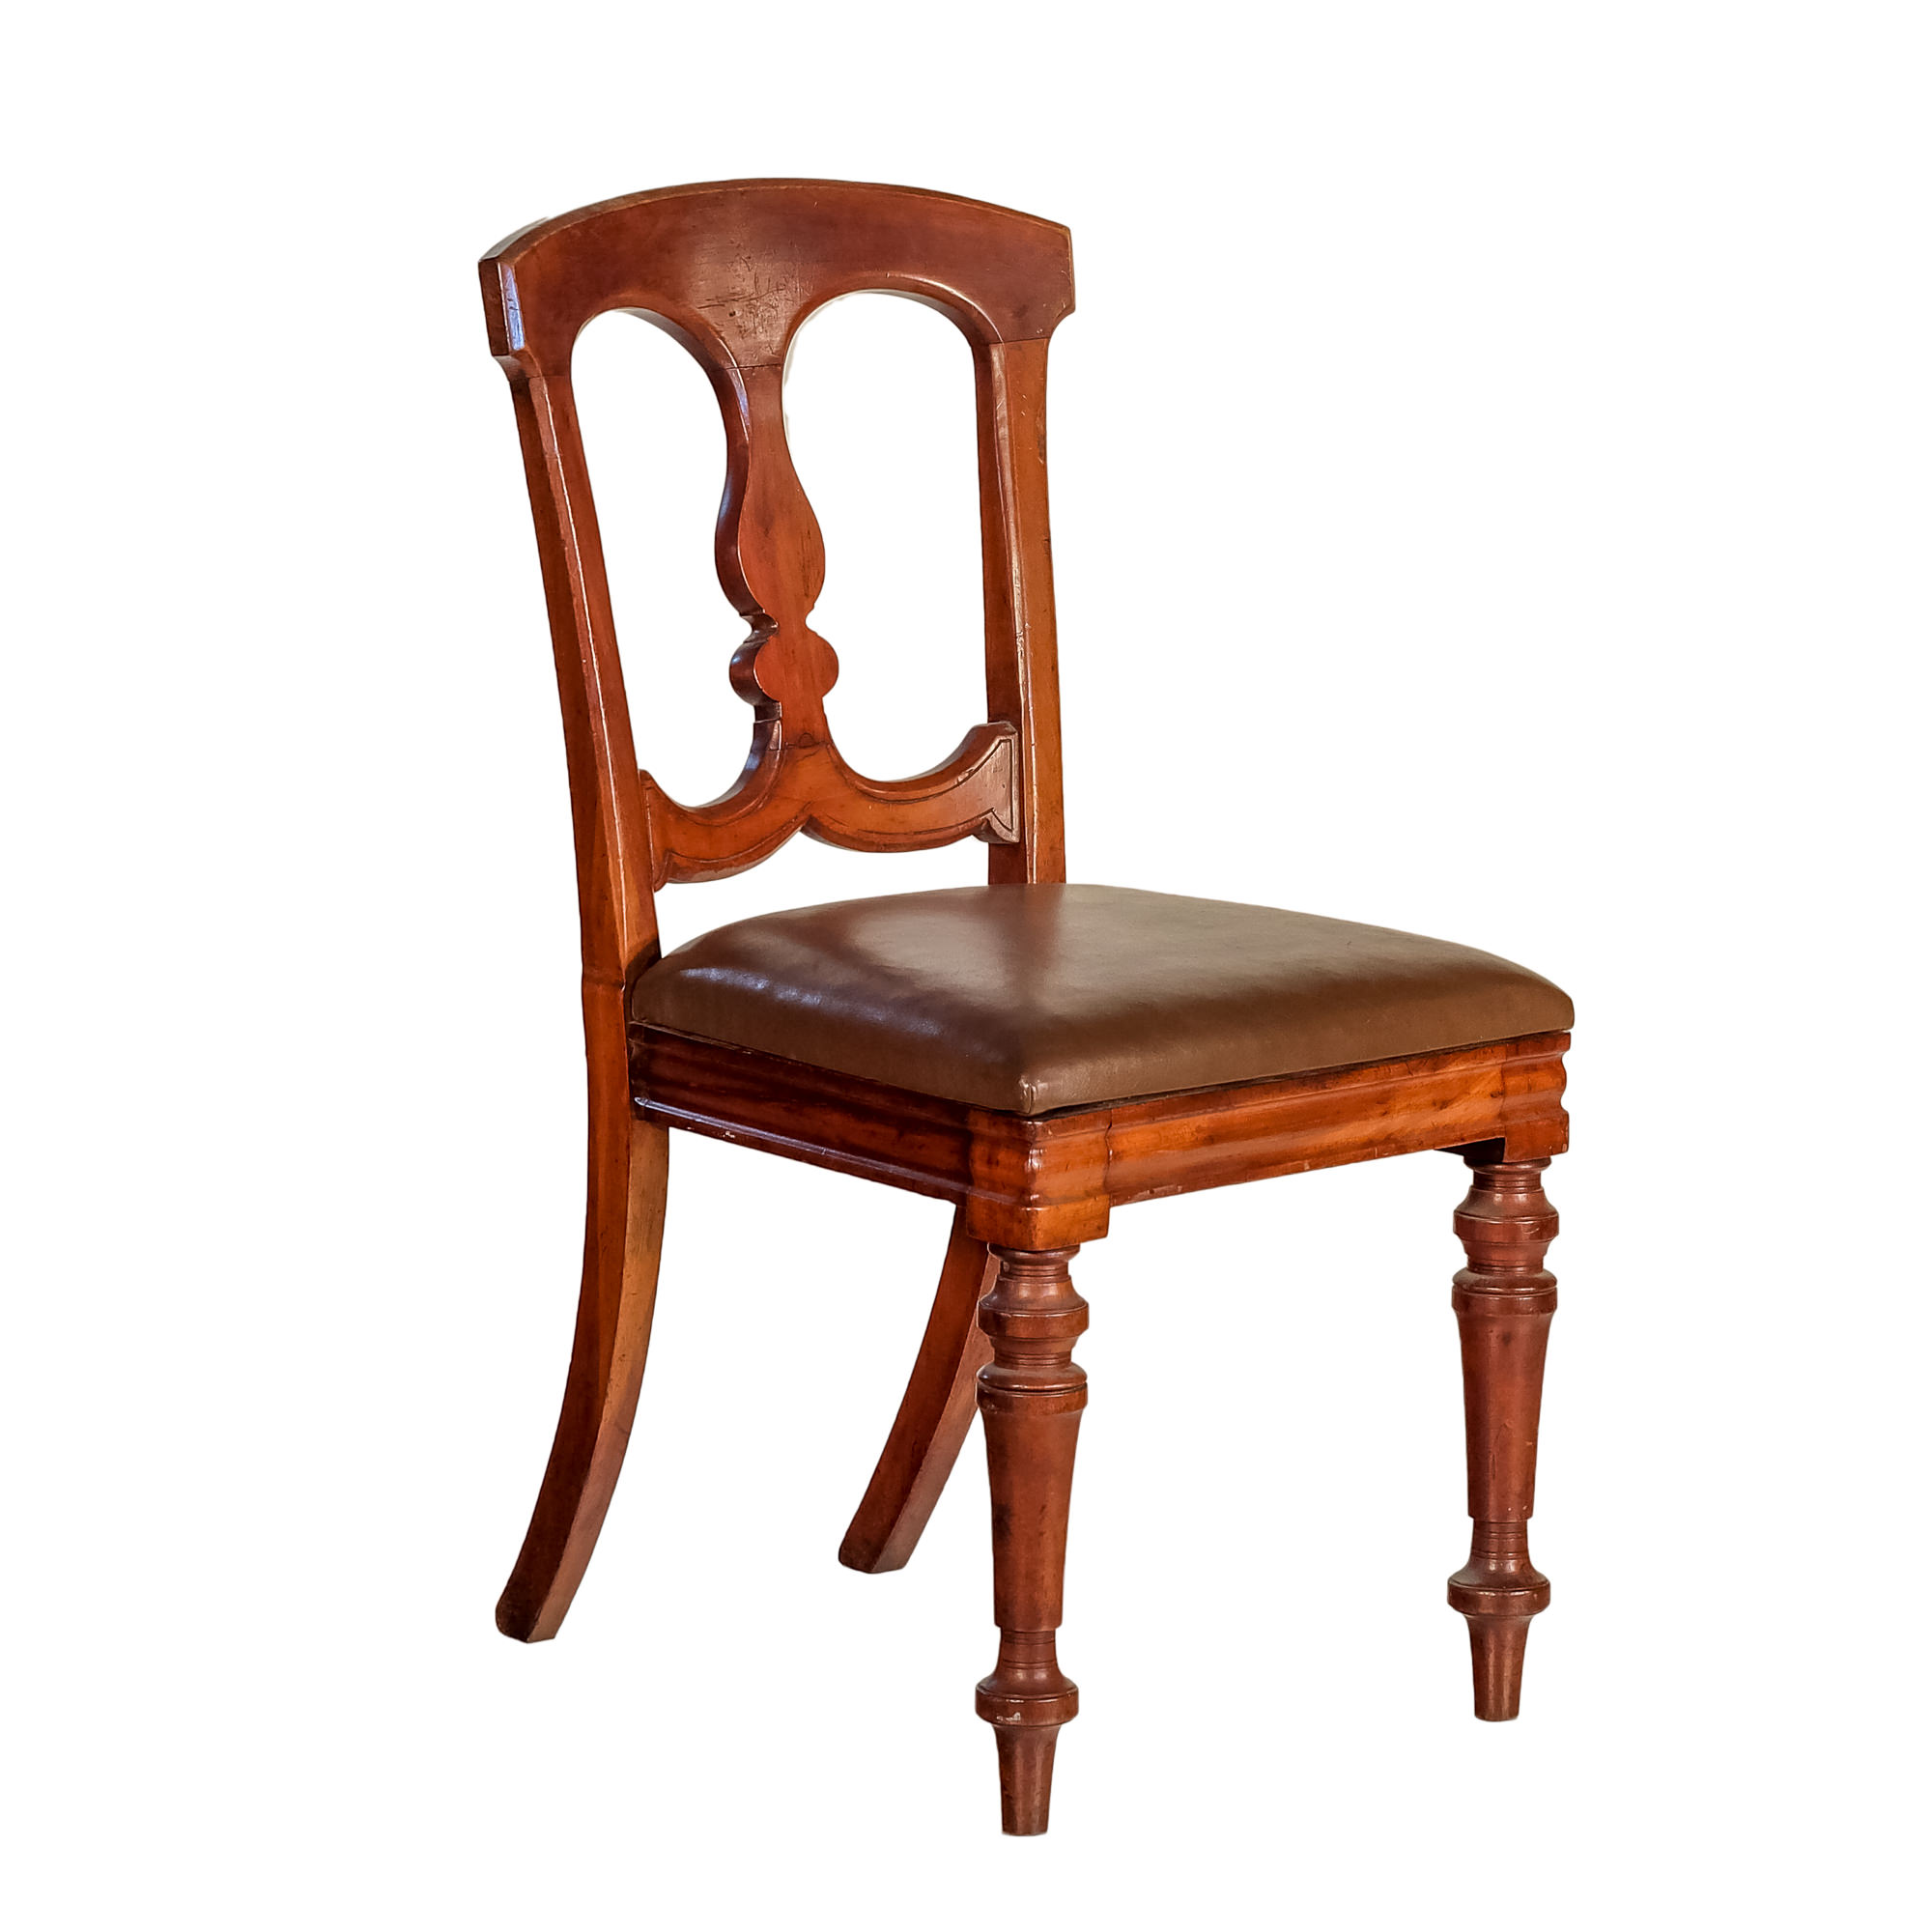 'Late Victorian Mahogany Dining Chair with Tan Leather Upholstery Circa 1890'